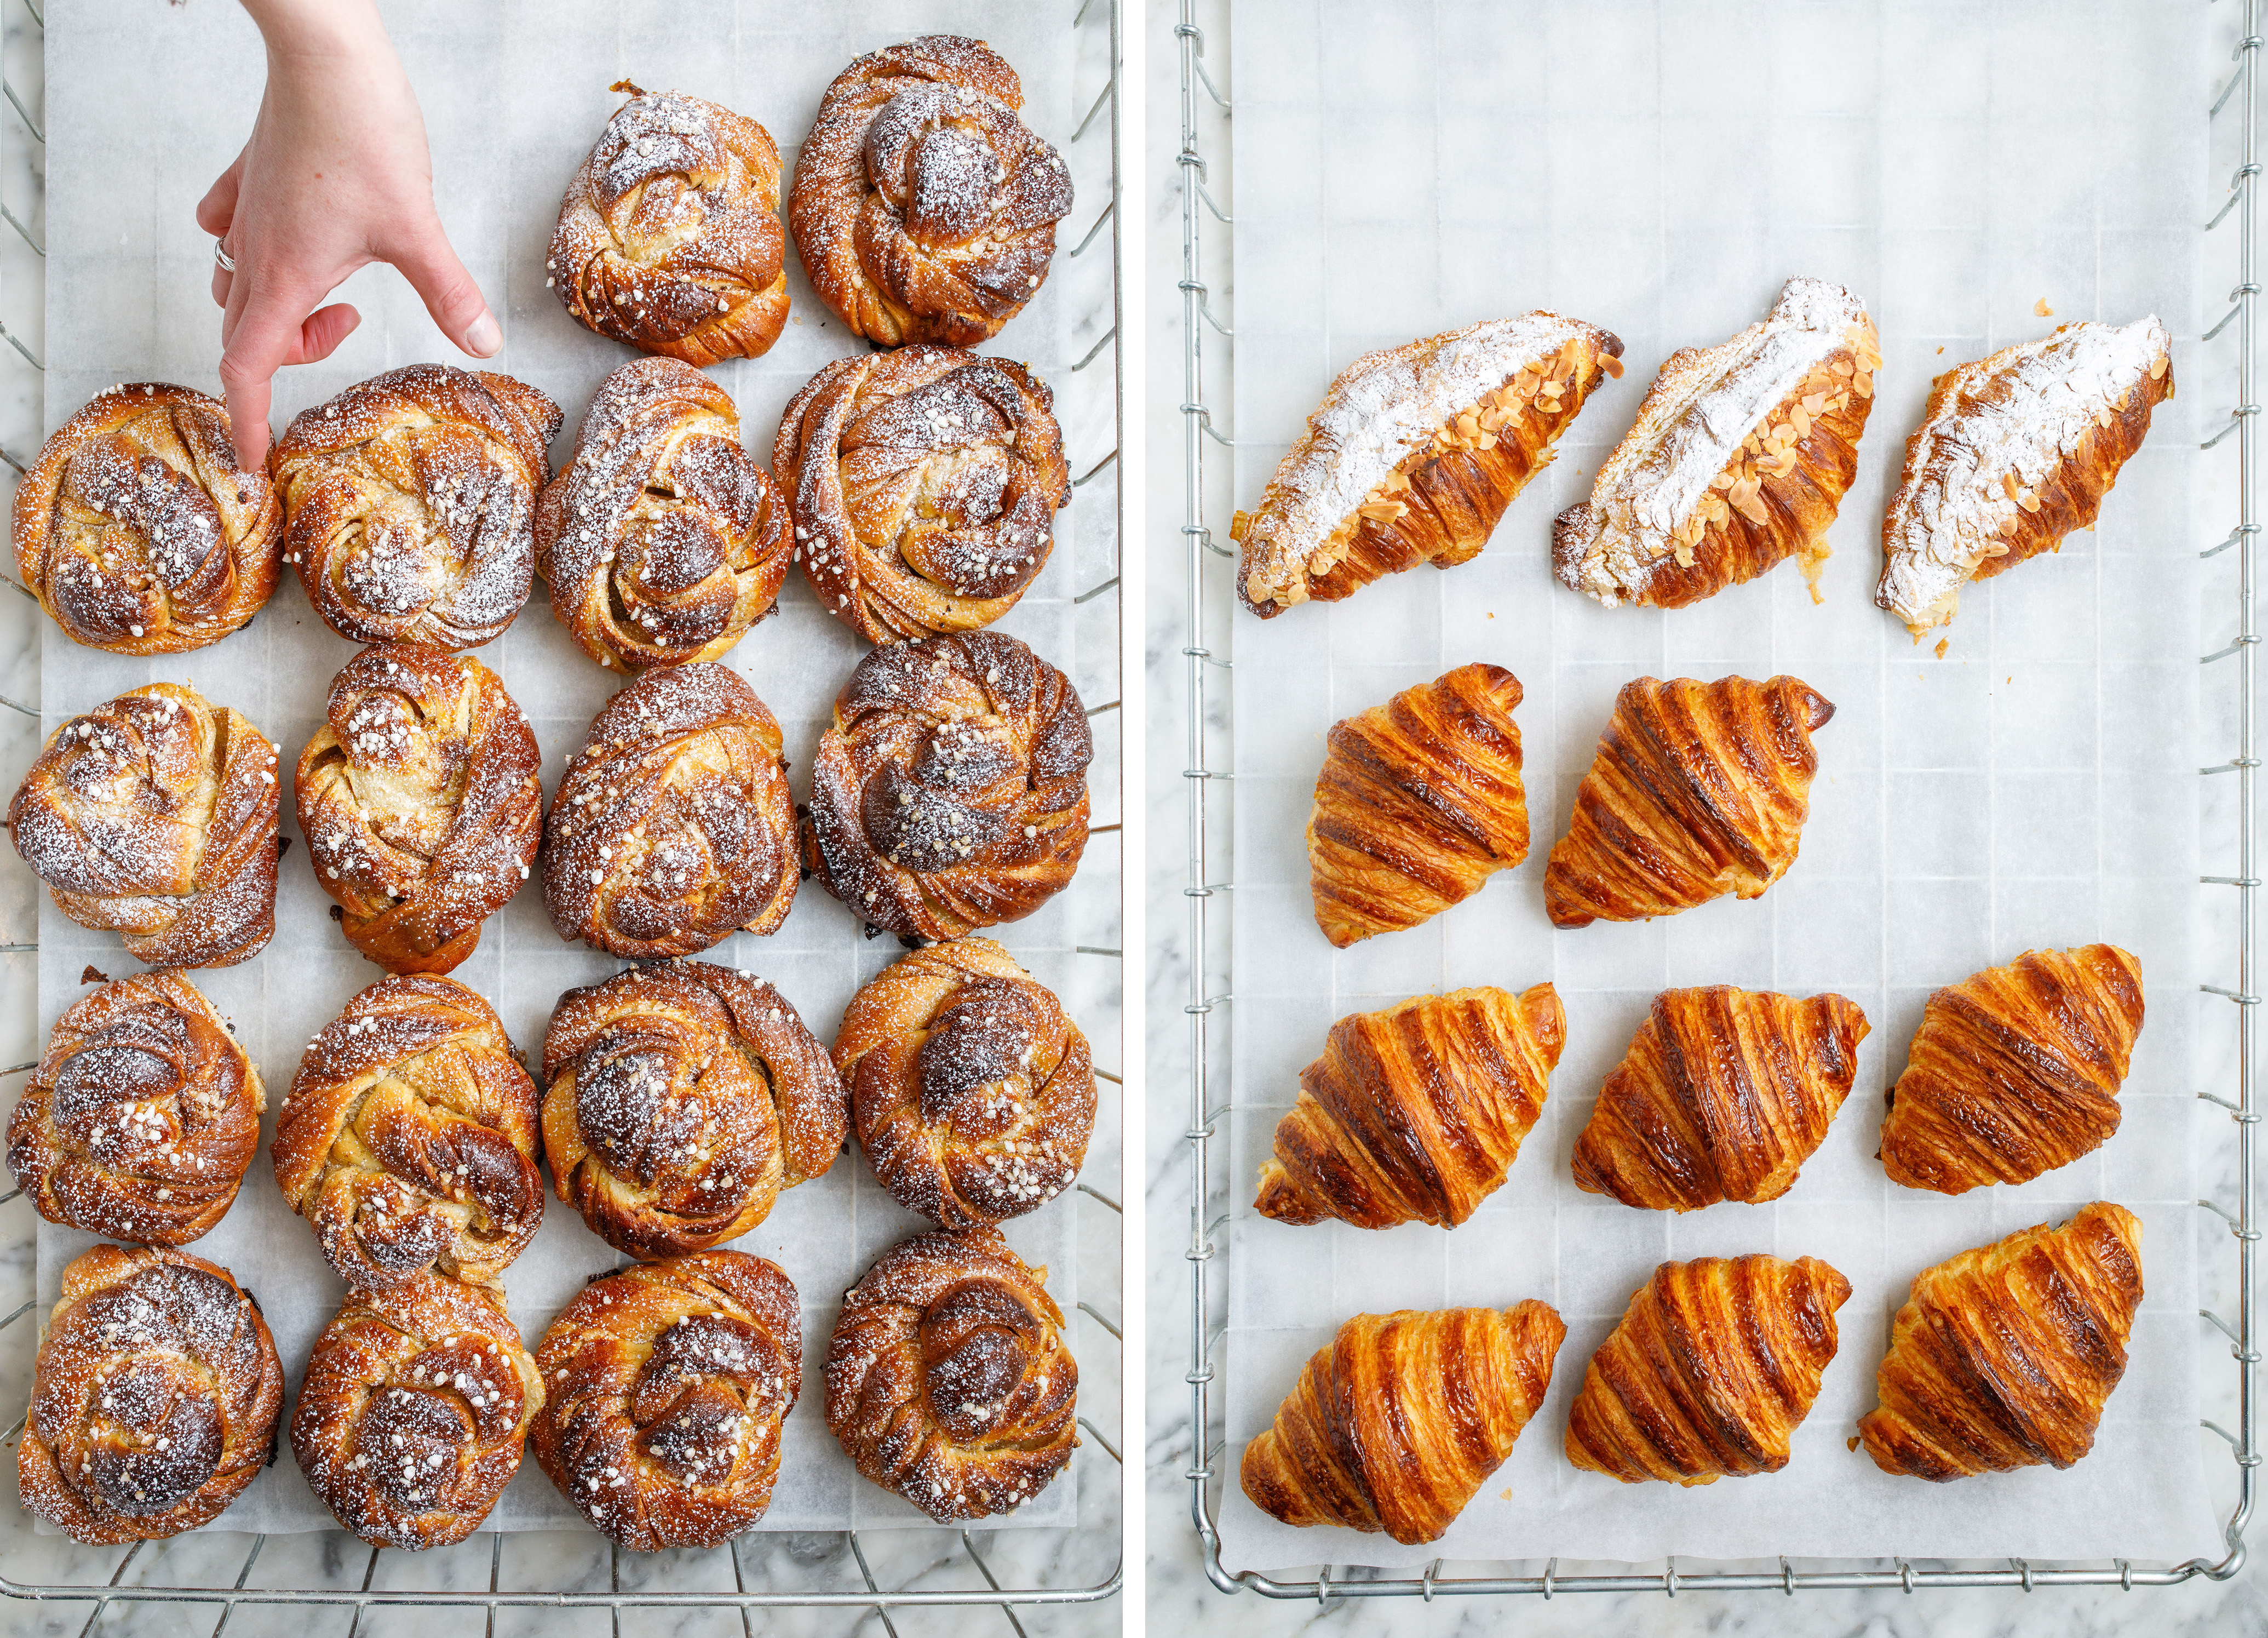 Medicine Bakery & Cafe - food and lifestyle photography